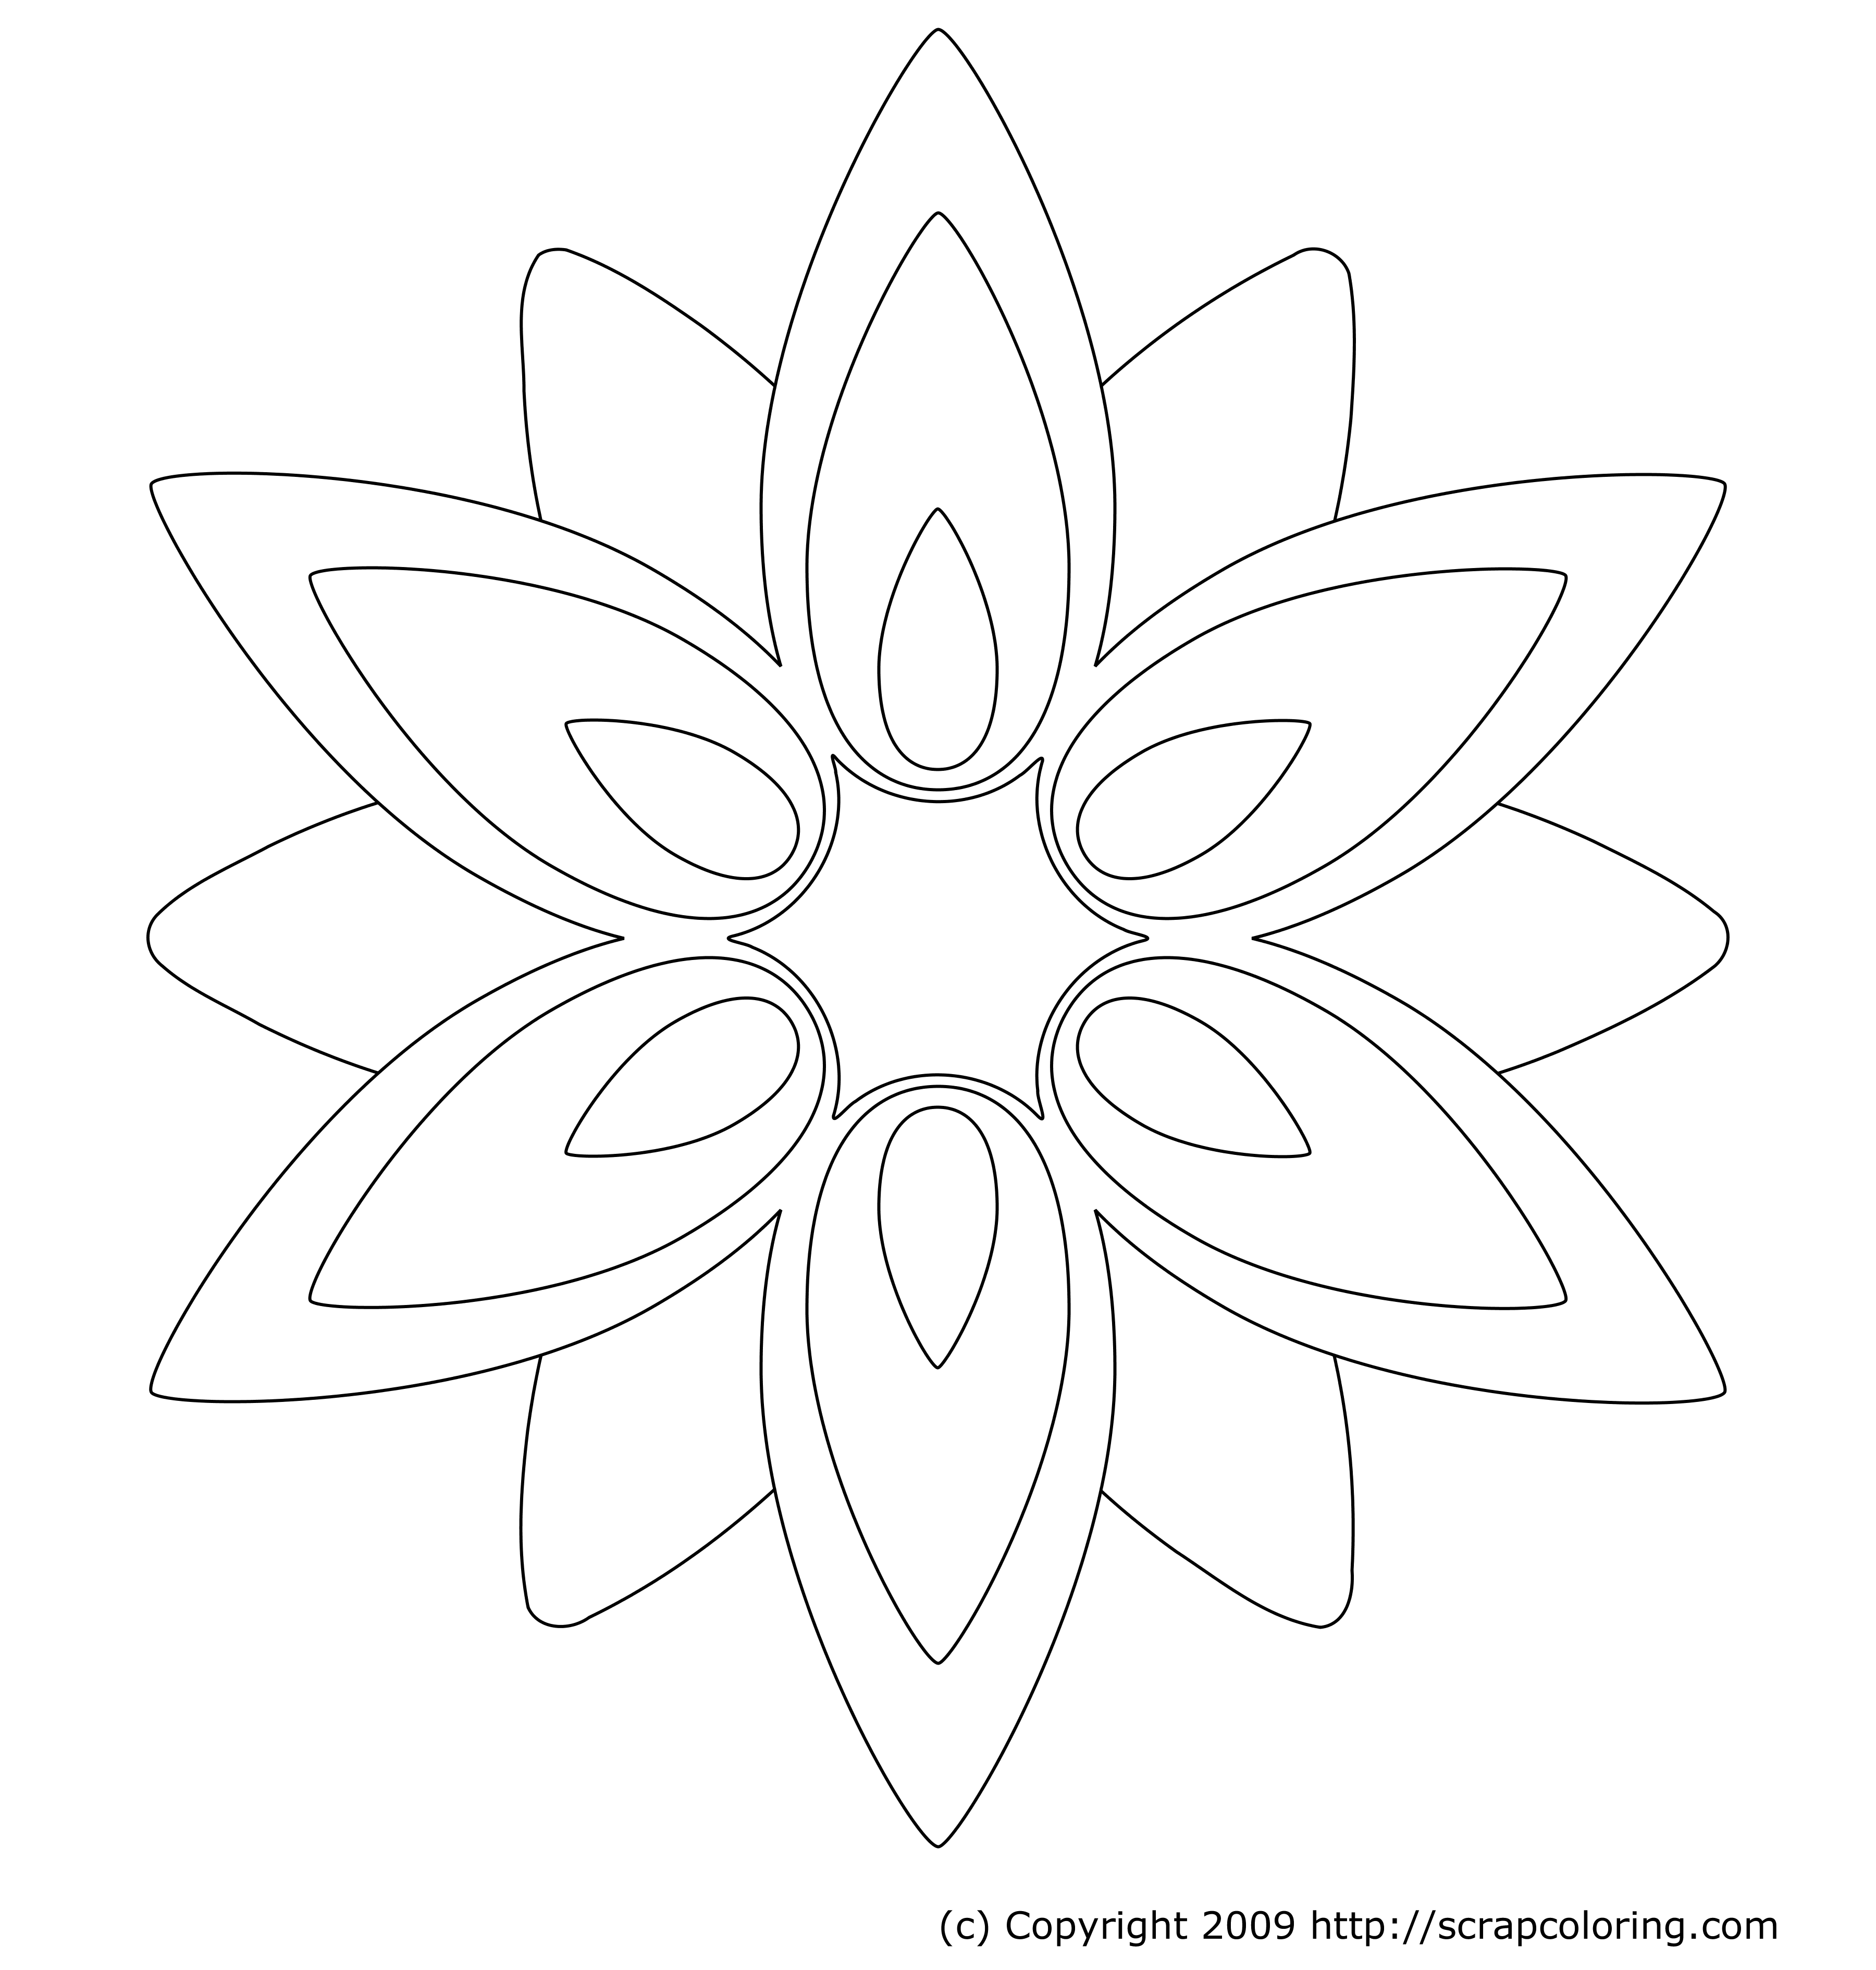 Coloring Pages of Flowers Roses | Flower Rose Window coloring ...